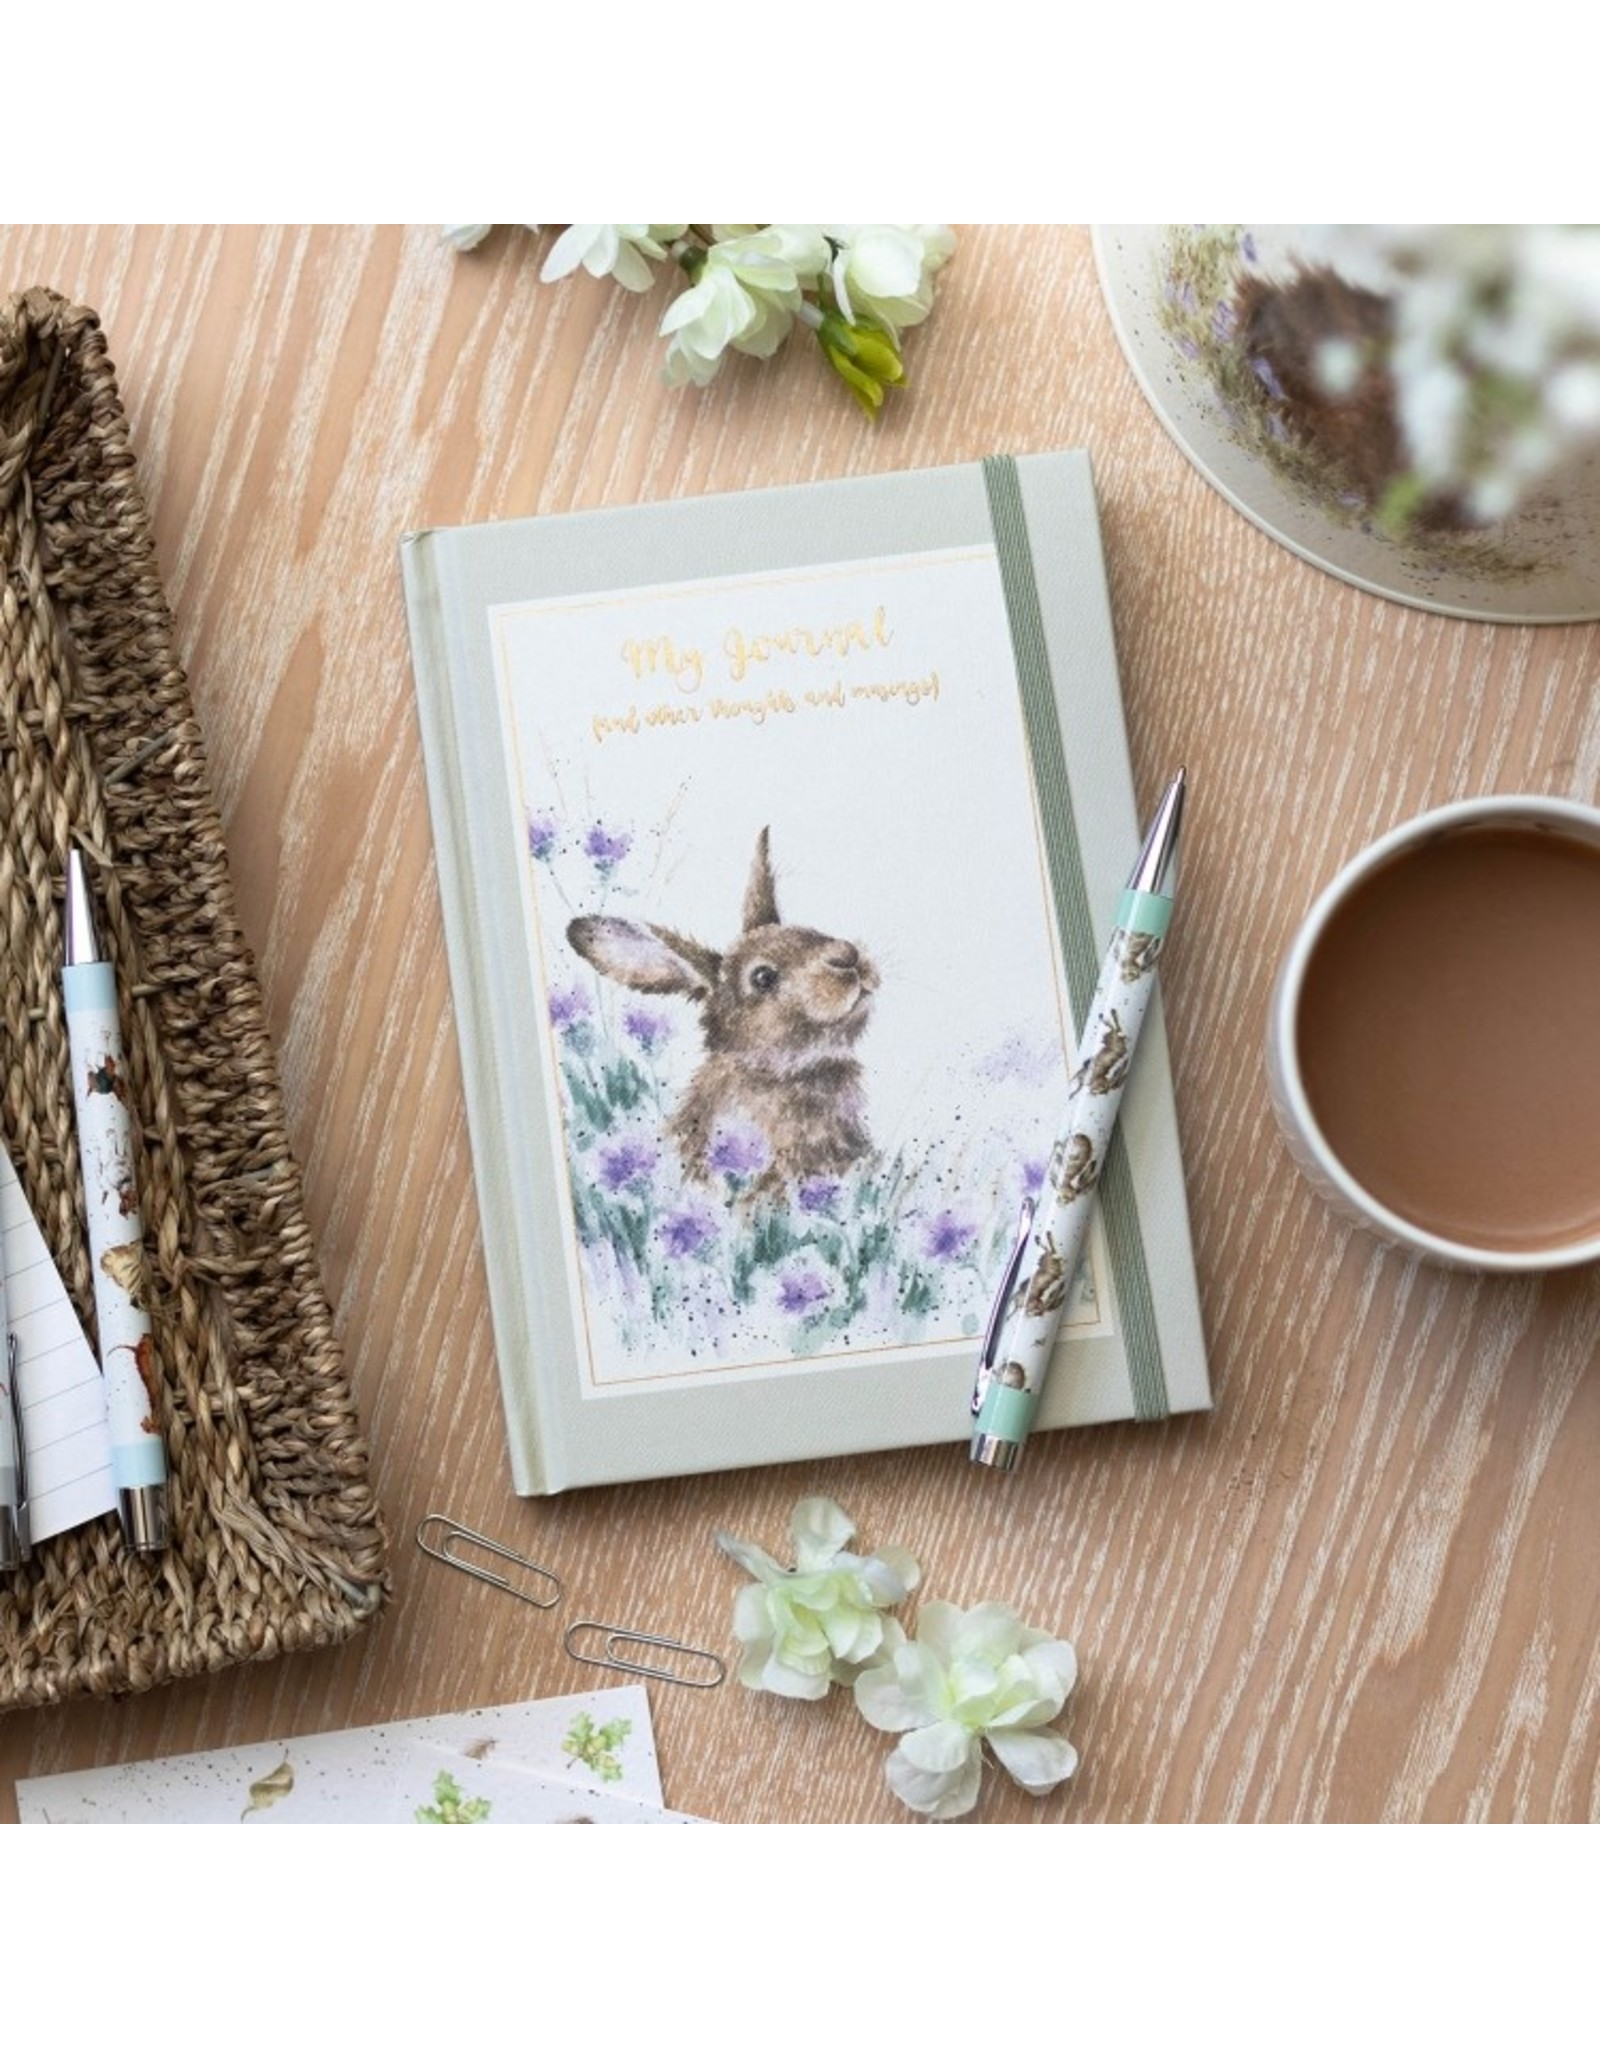 Wrendale Journal - Some Bunny